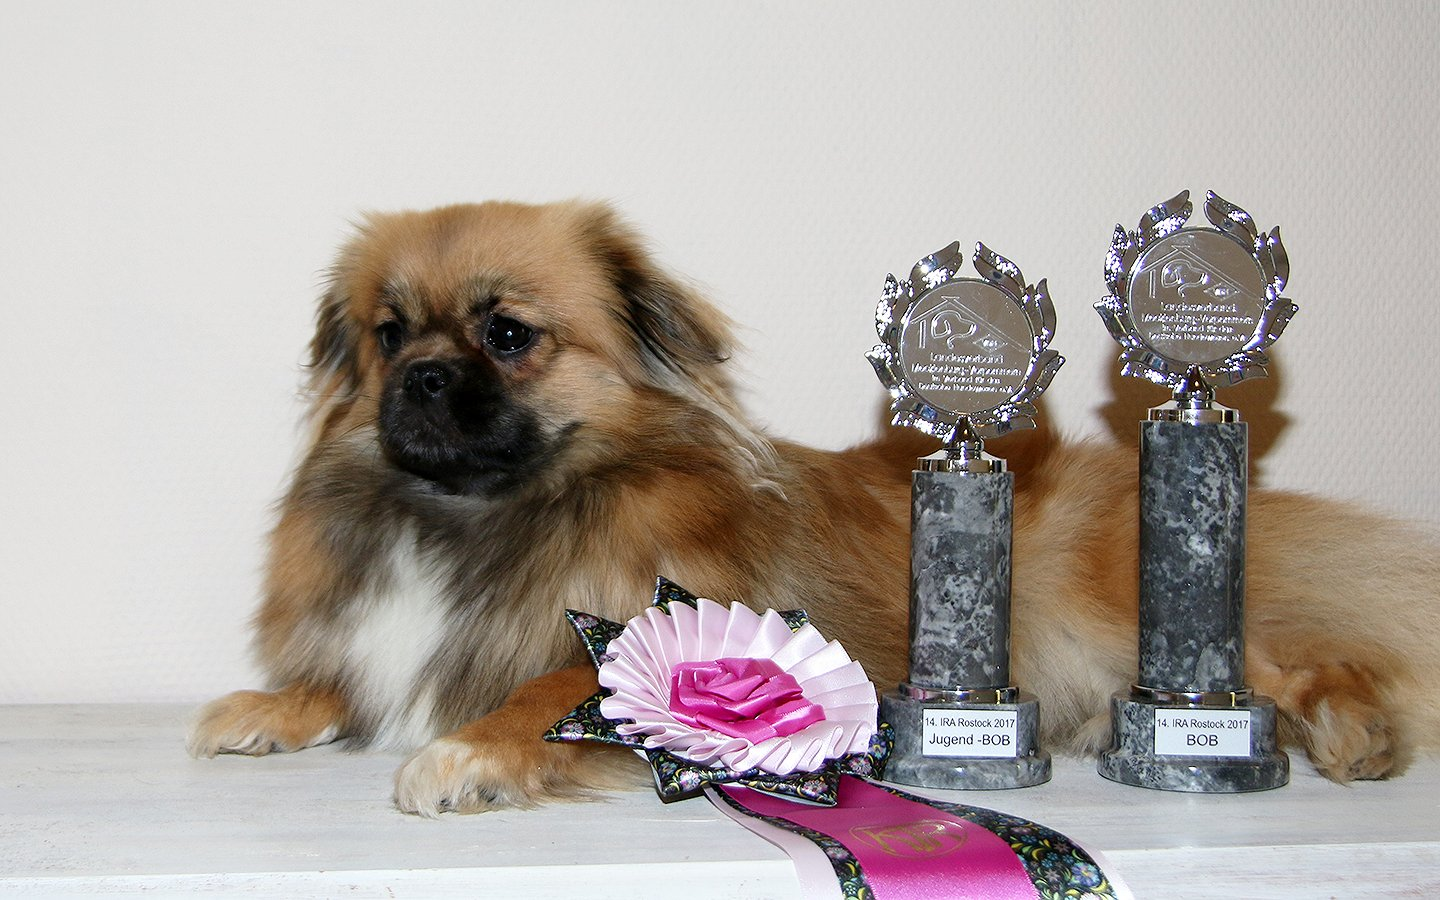 CACIB Rostock 2017 - Rostock Jugendsieger 2017 - BEST OF BREED